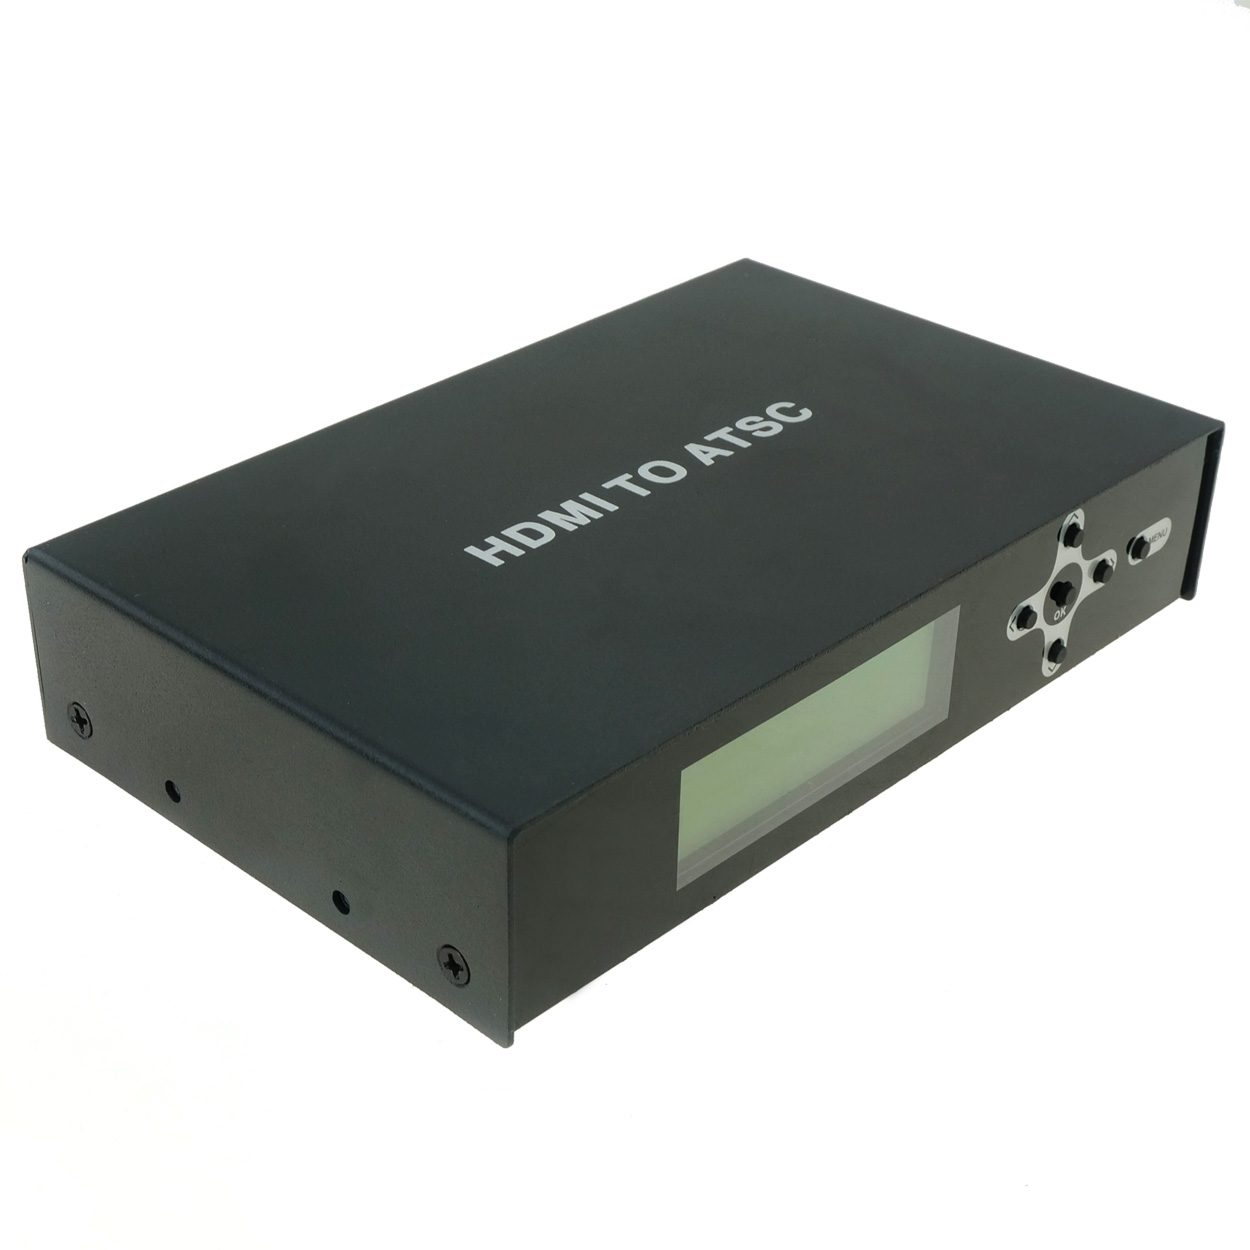 HDMI to ATSC Digital High Definition Signal Combiner / Video Injector (Maps HDMI to ATSC Channel)